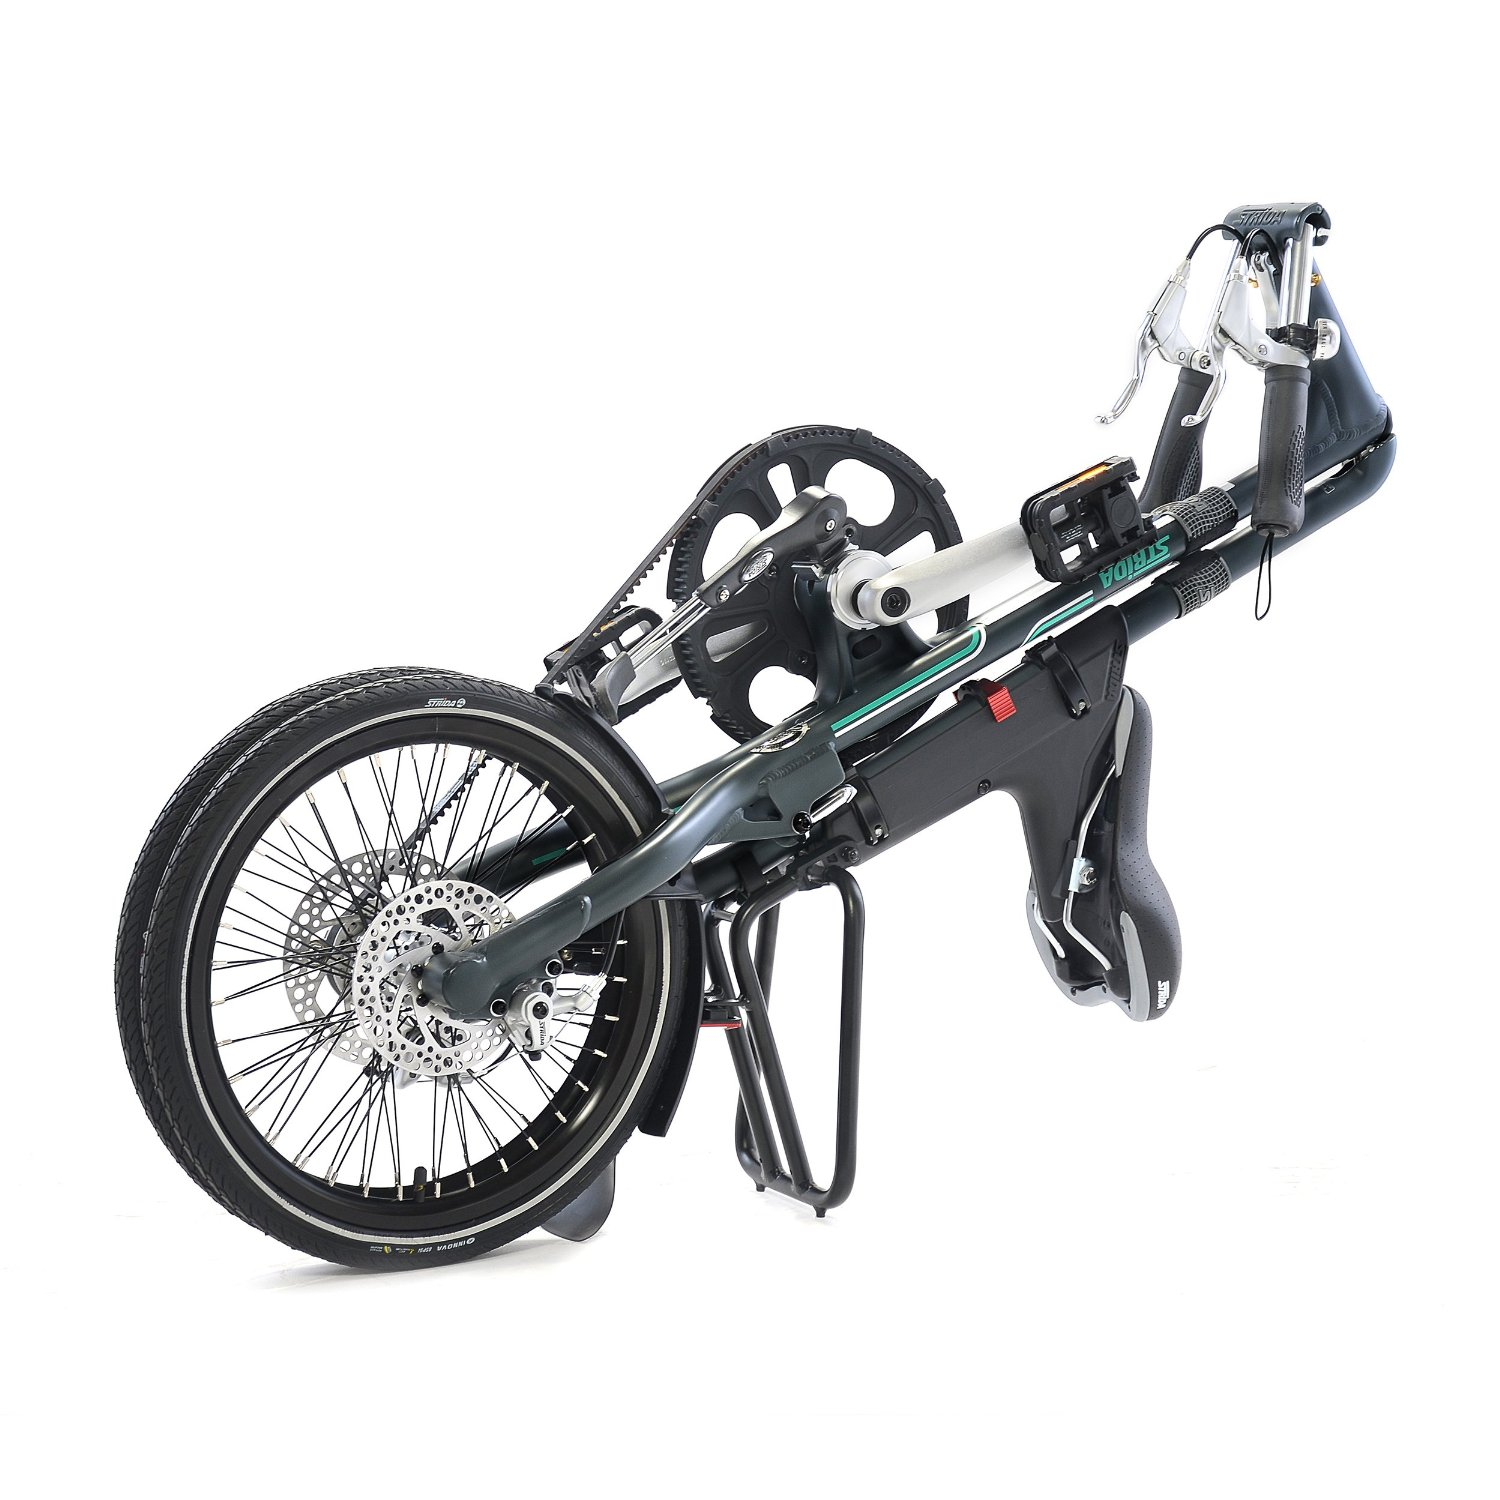 Strida folding bike: overview, features and reviews 17